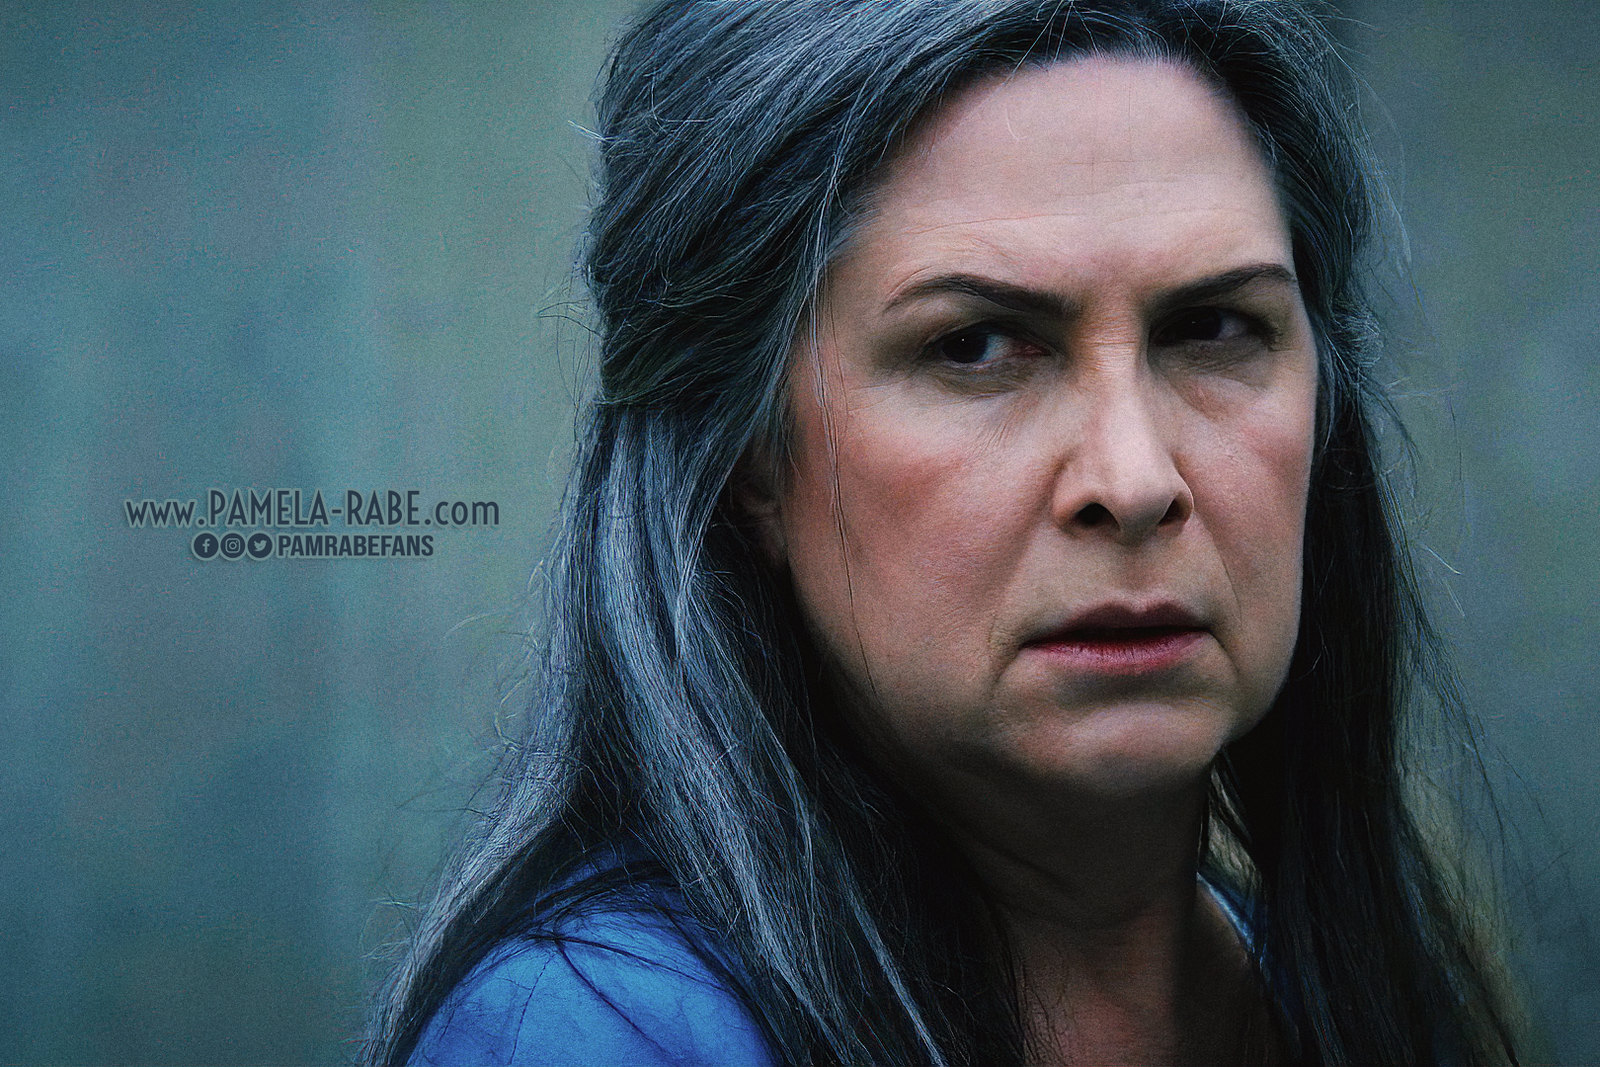 Pamela Rabe in Wentworth Season 8 | Edit by www.Pamela-Rabe.com